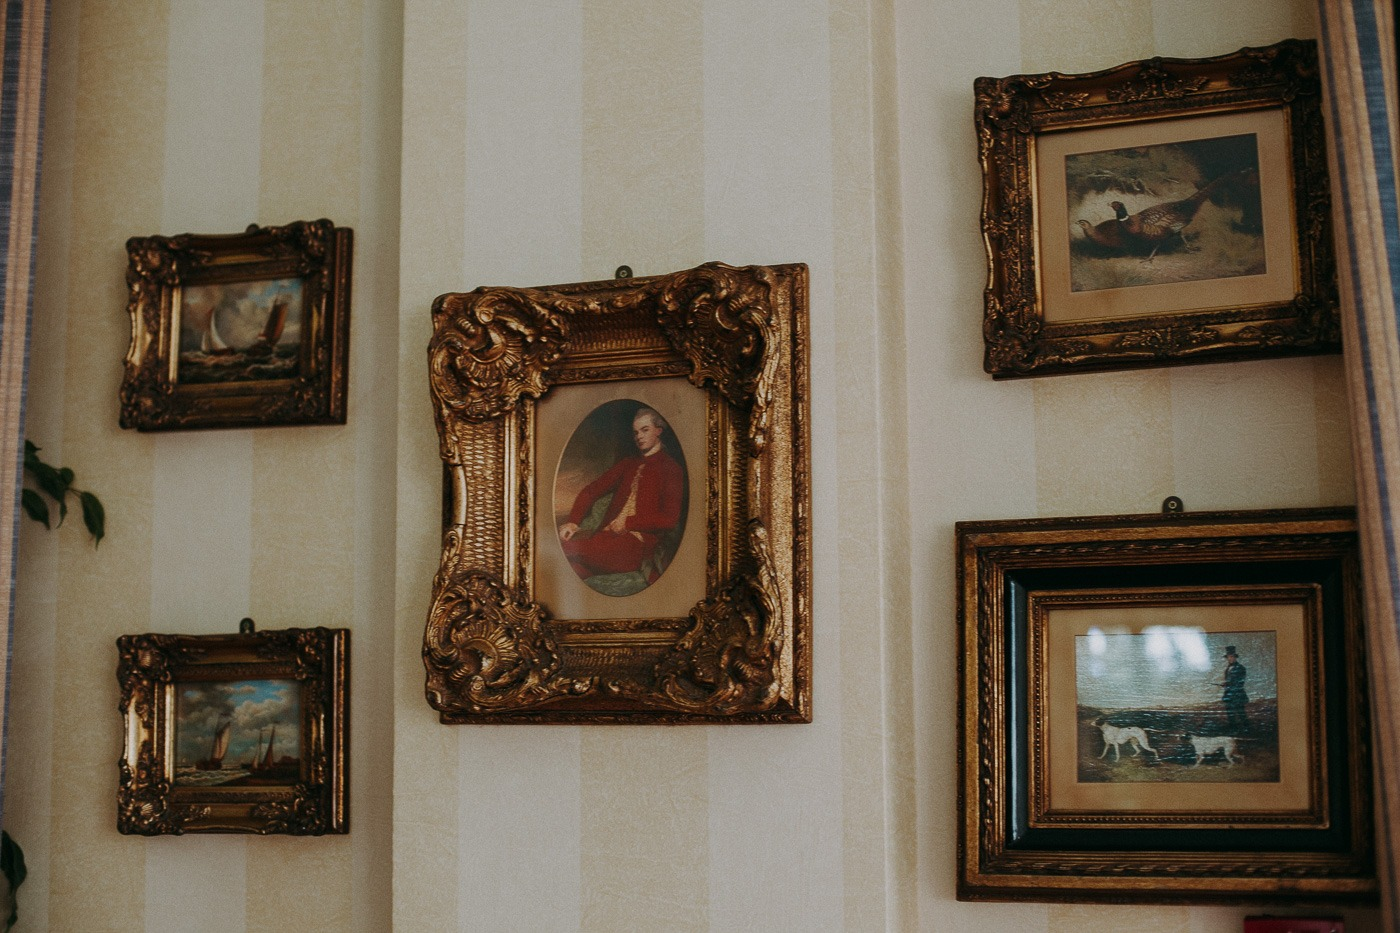 A painting on the wall